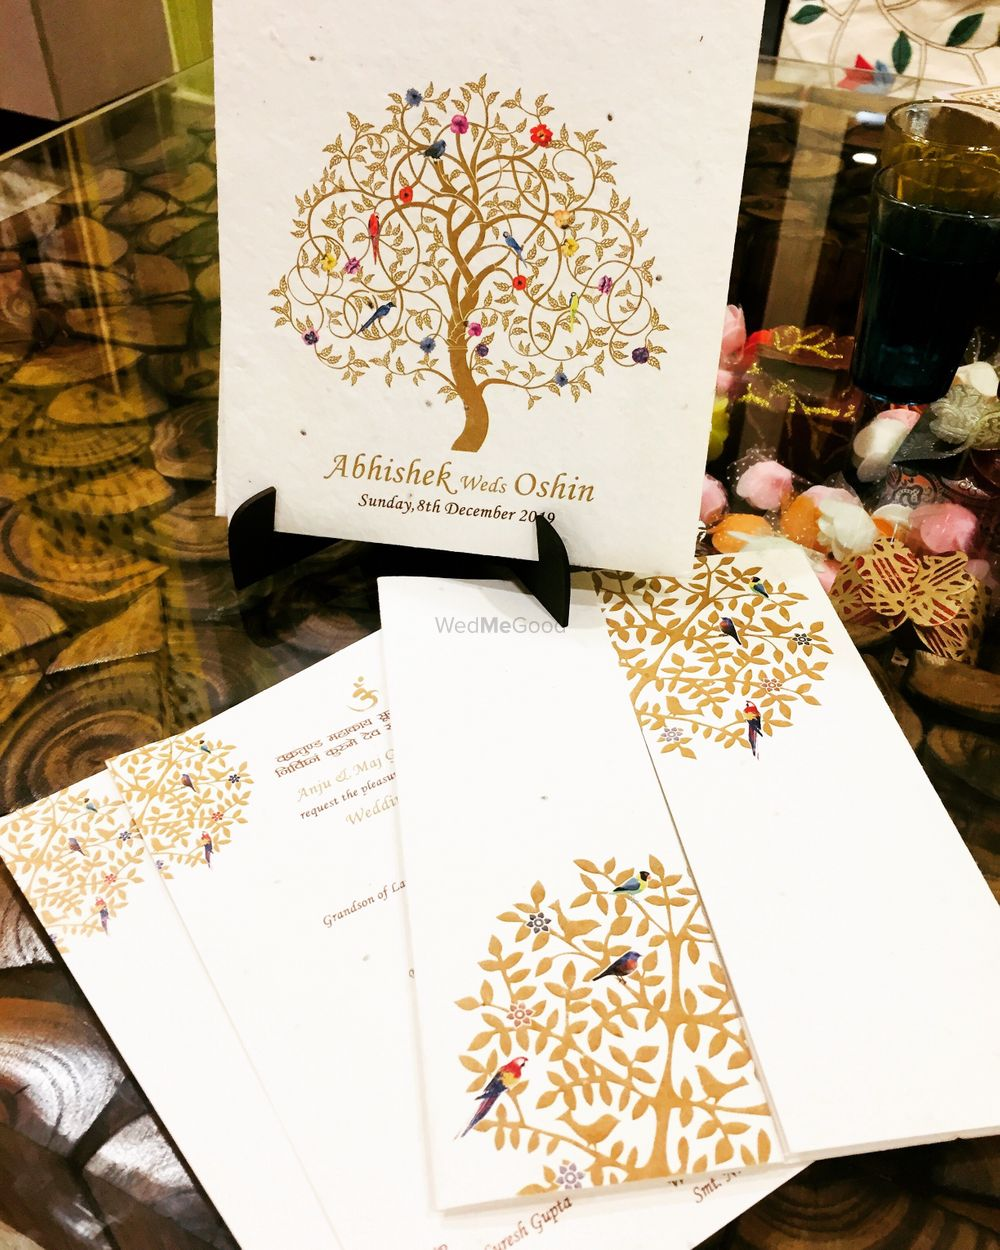 Photo From Plantable seed handmade paper invites  - By Impressive Crafts